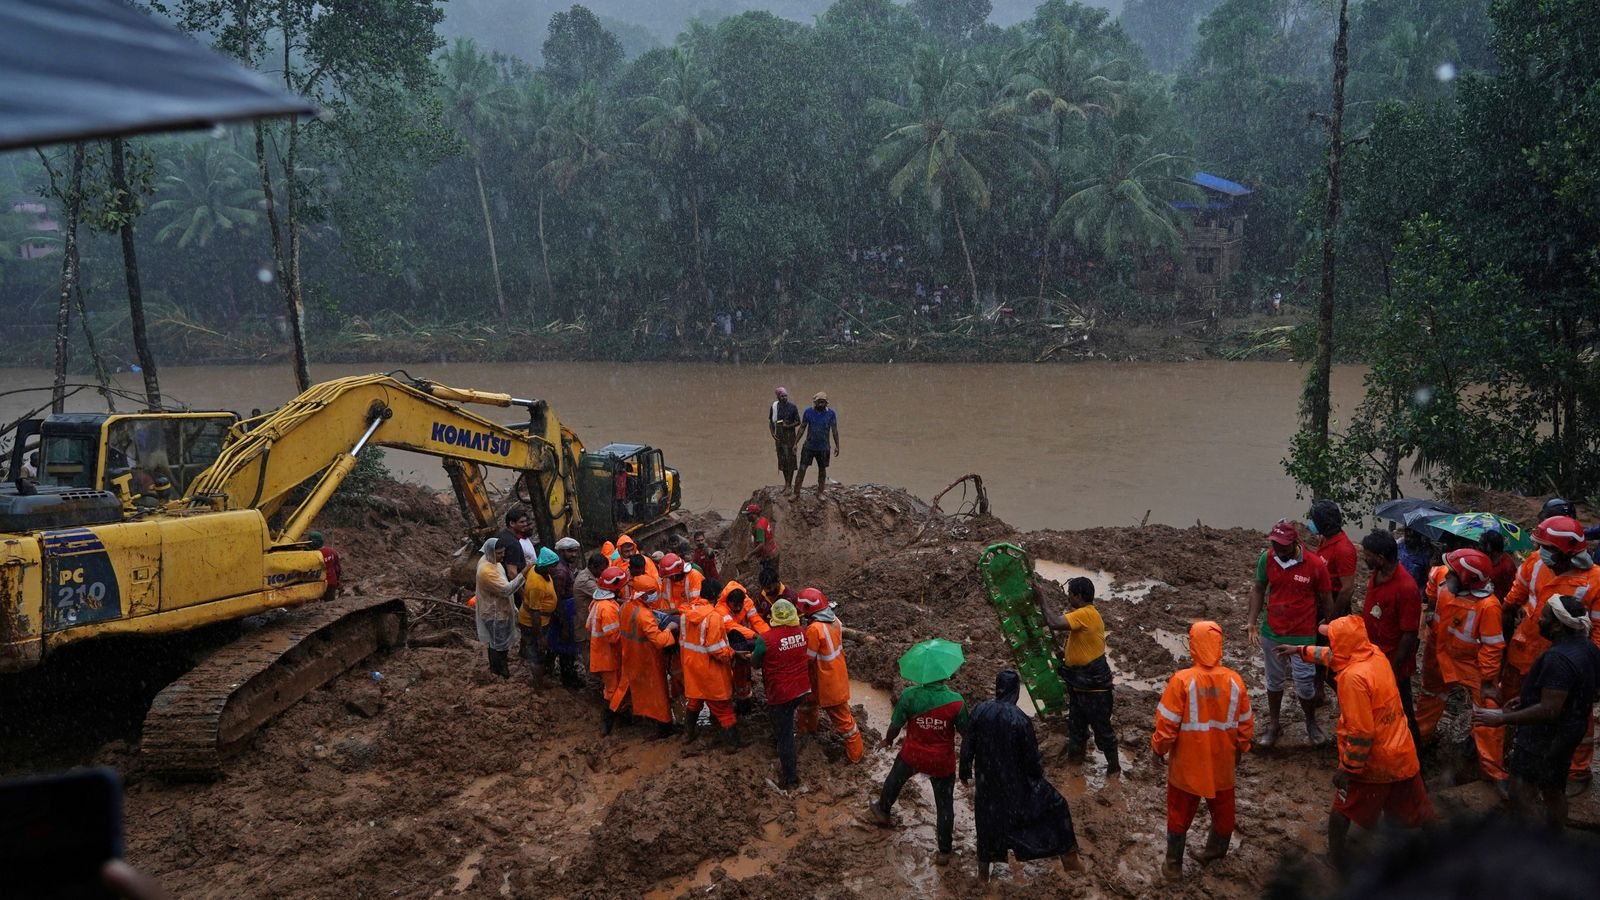 Kerala floods: At least 22 people killed in flash flooding and landslides in south Indian state